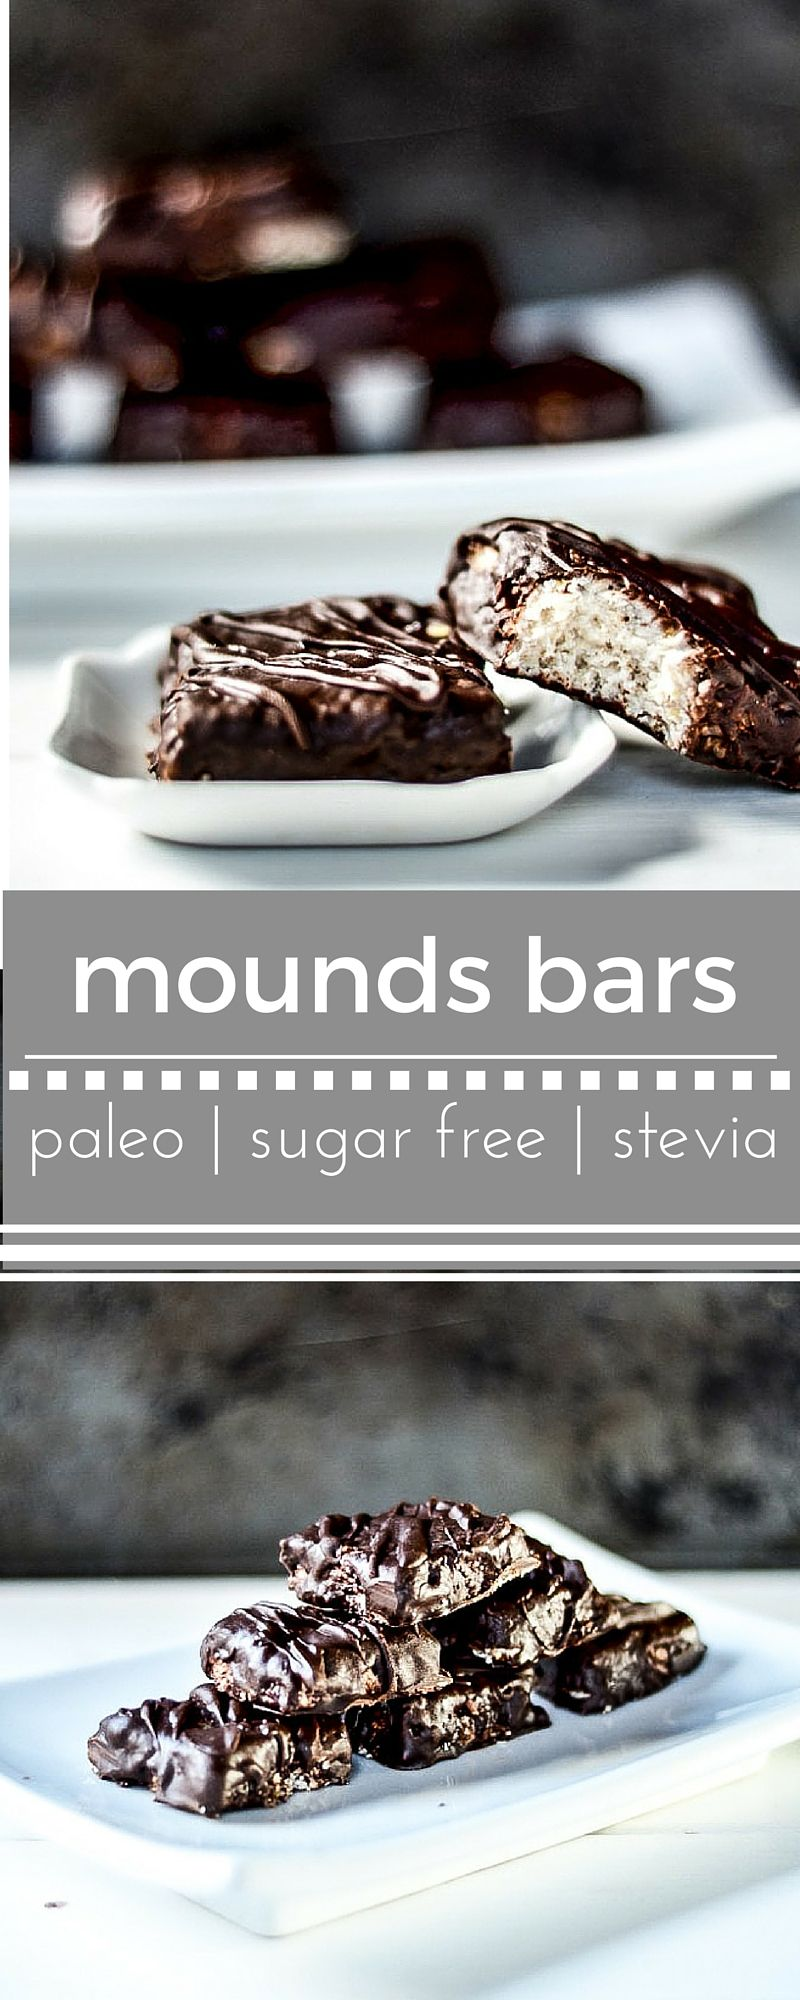 Paleo Mounds Bars Made With Creamy Coconut Filling And Covered In Chocolate Makanan Permen Cokelat Resep Makanan Penutup